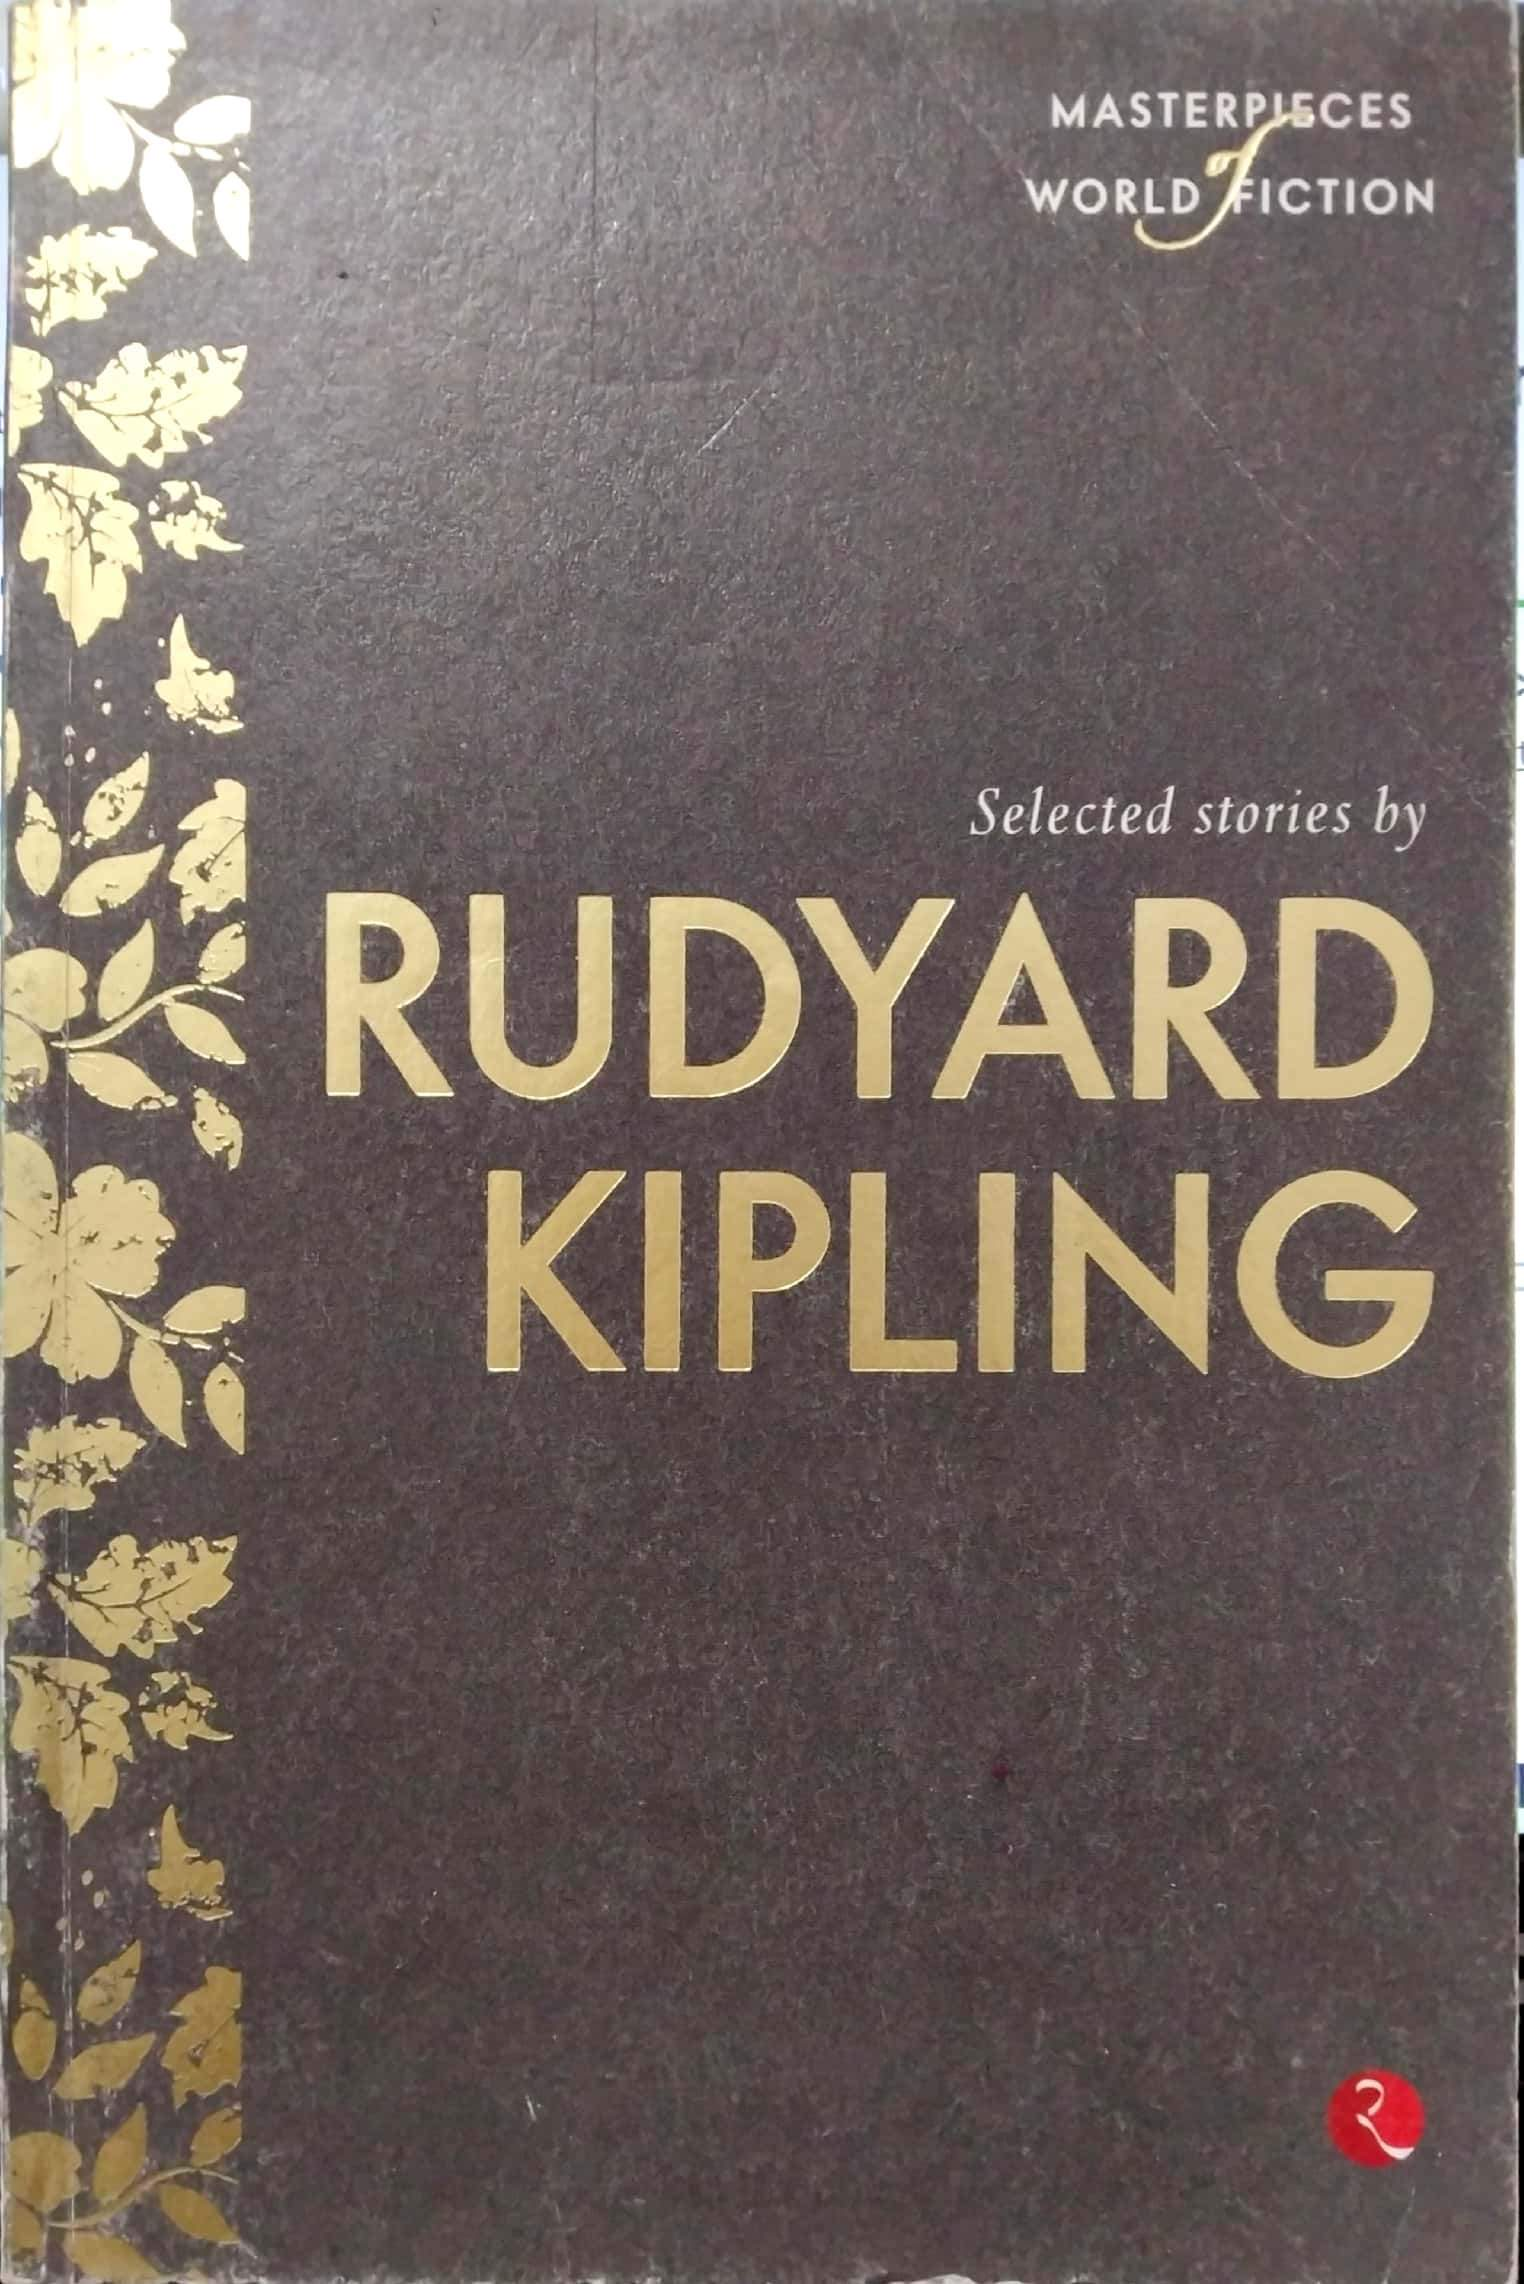 Masterpieces of World Fiction: Selected Stories By RUDYARD KIPLING